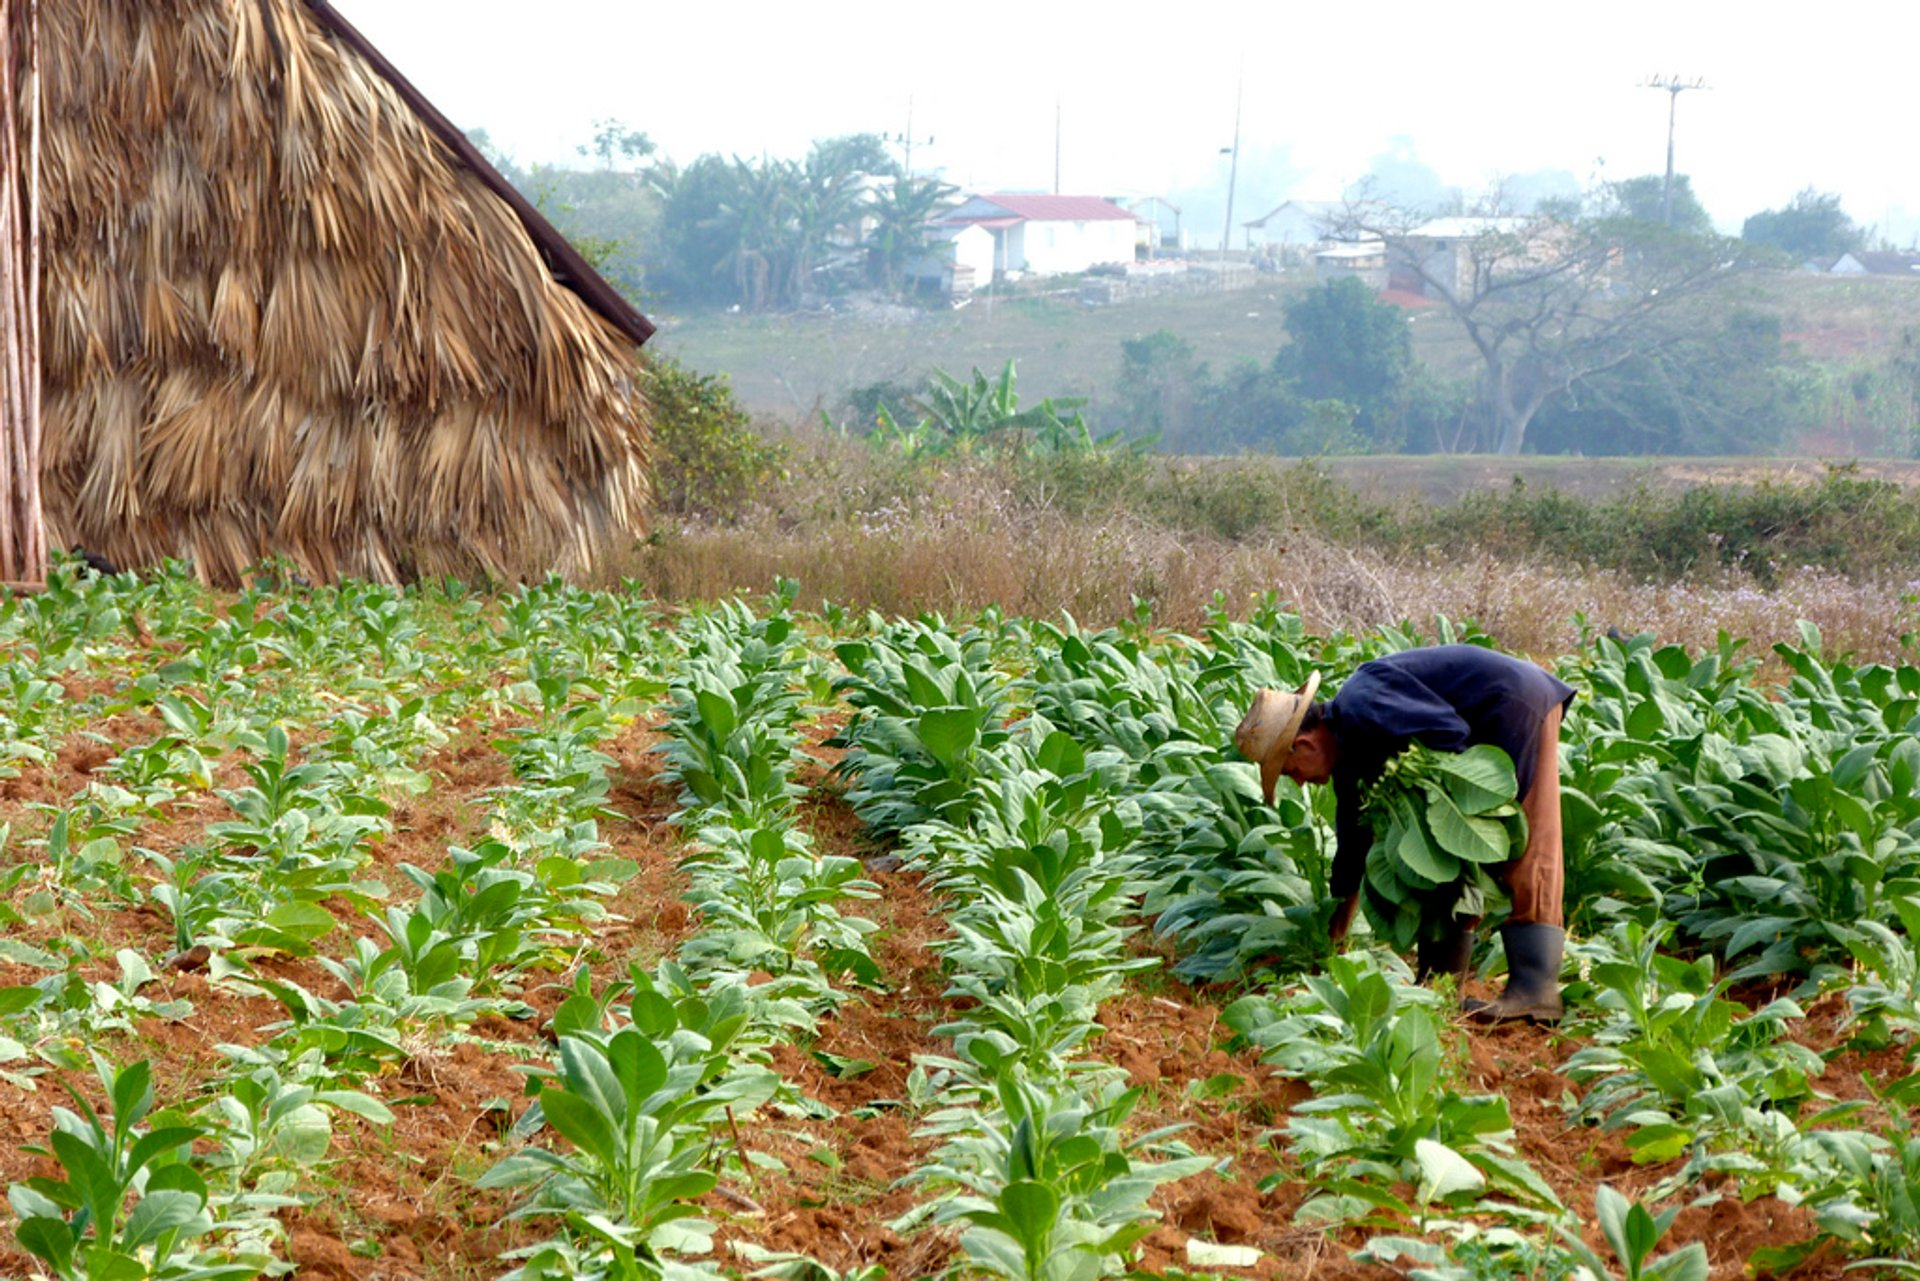 Harvesting tobacco in Vinales 2019